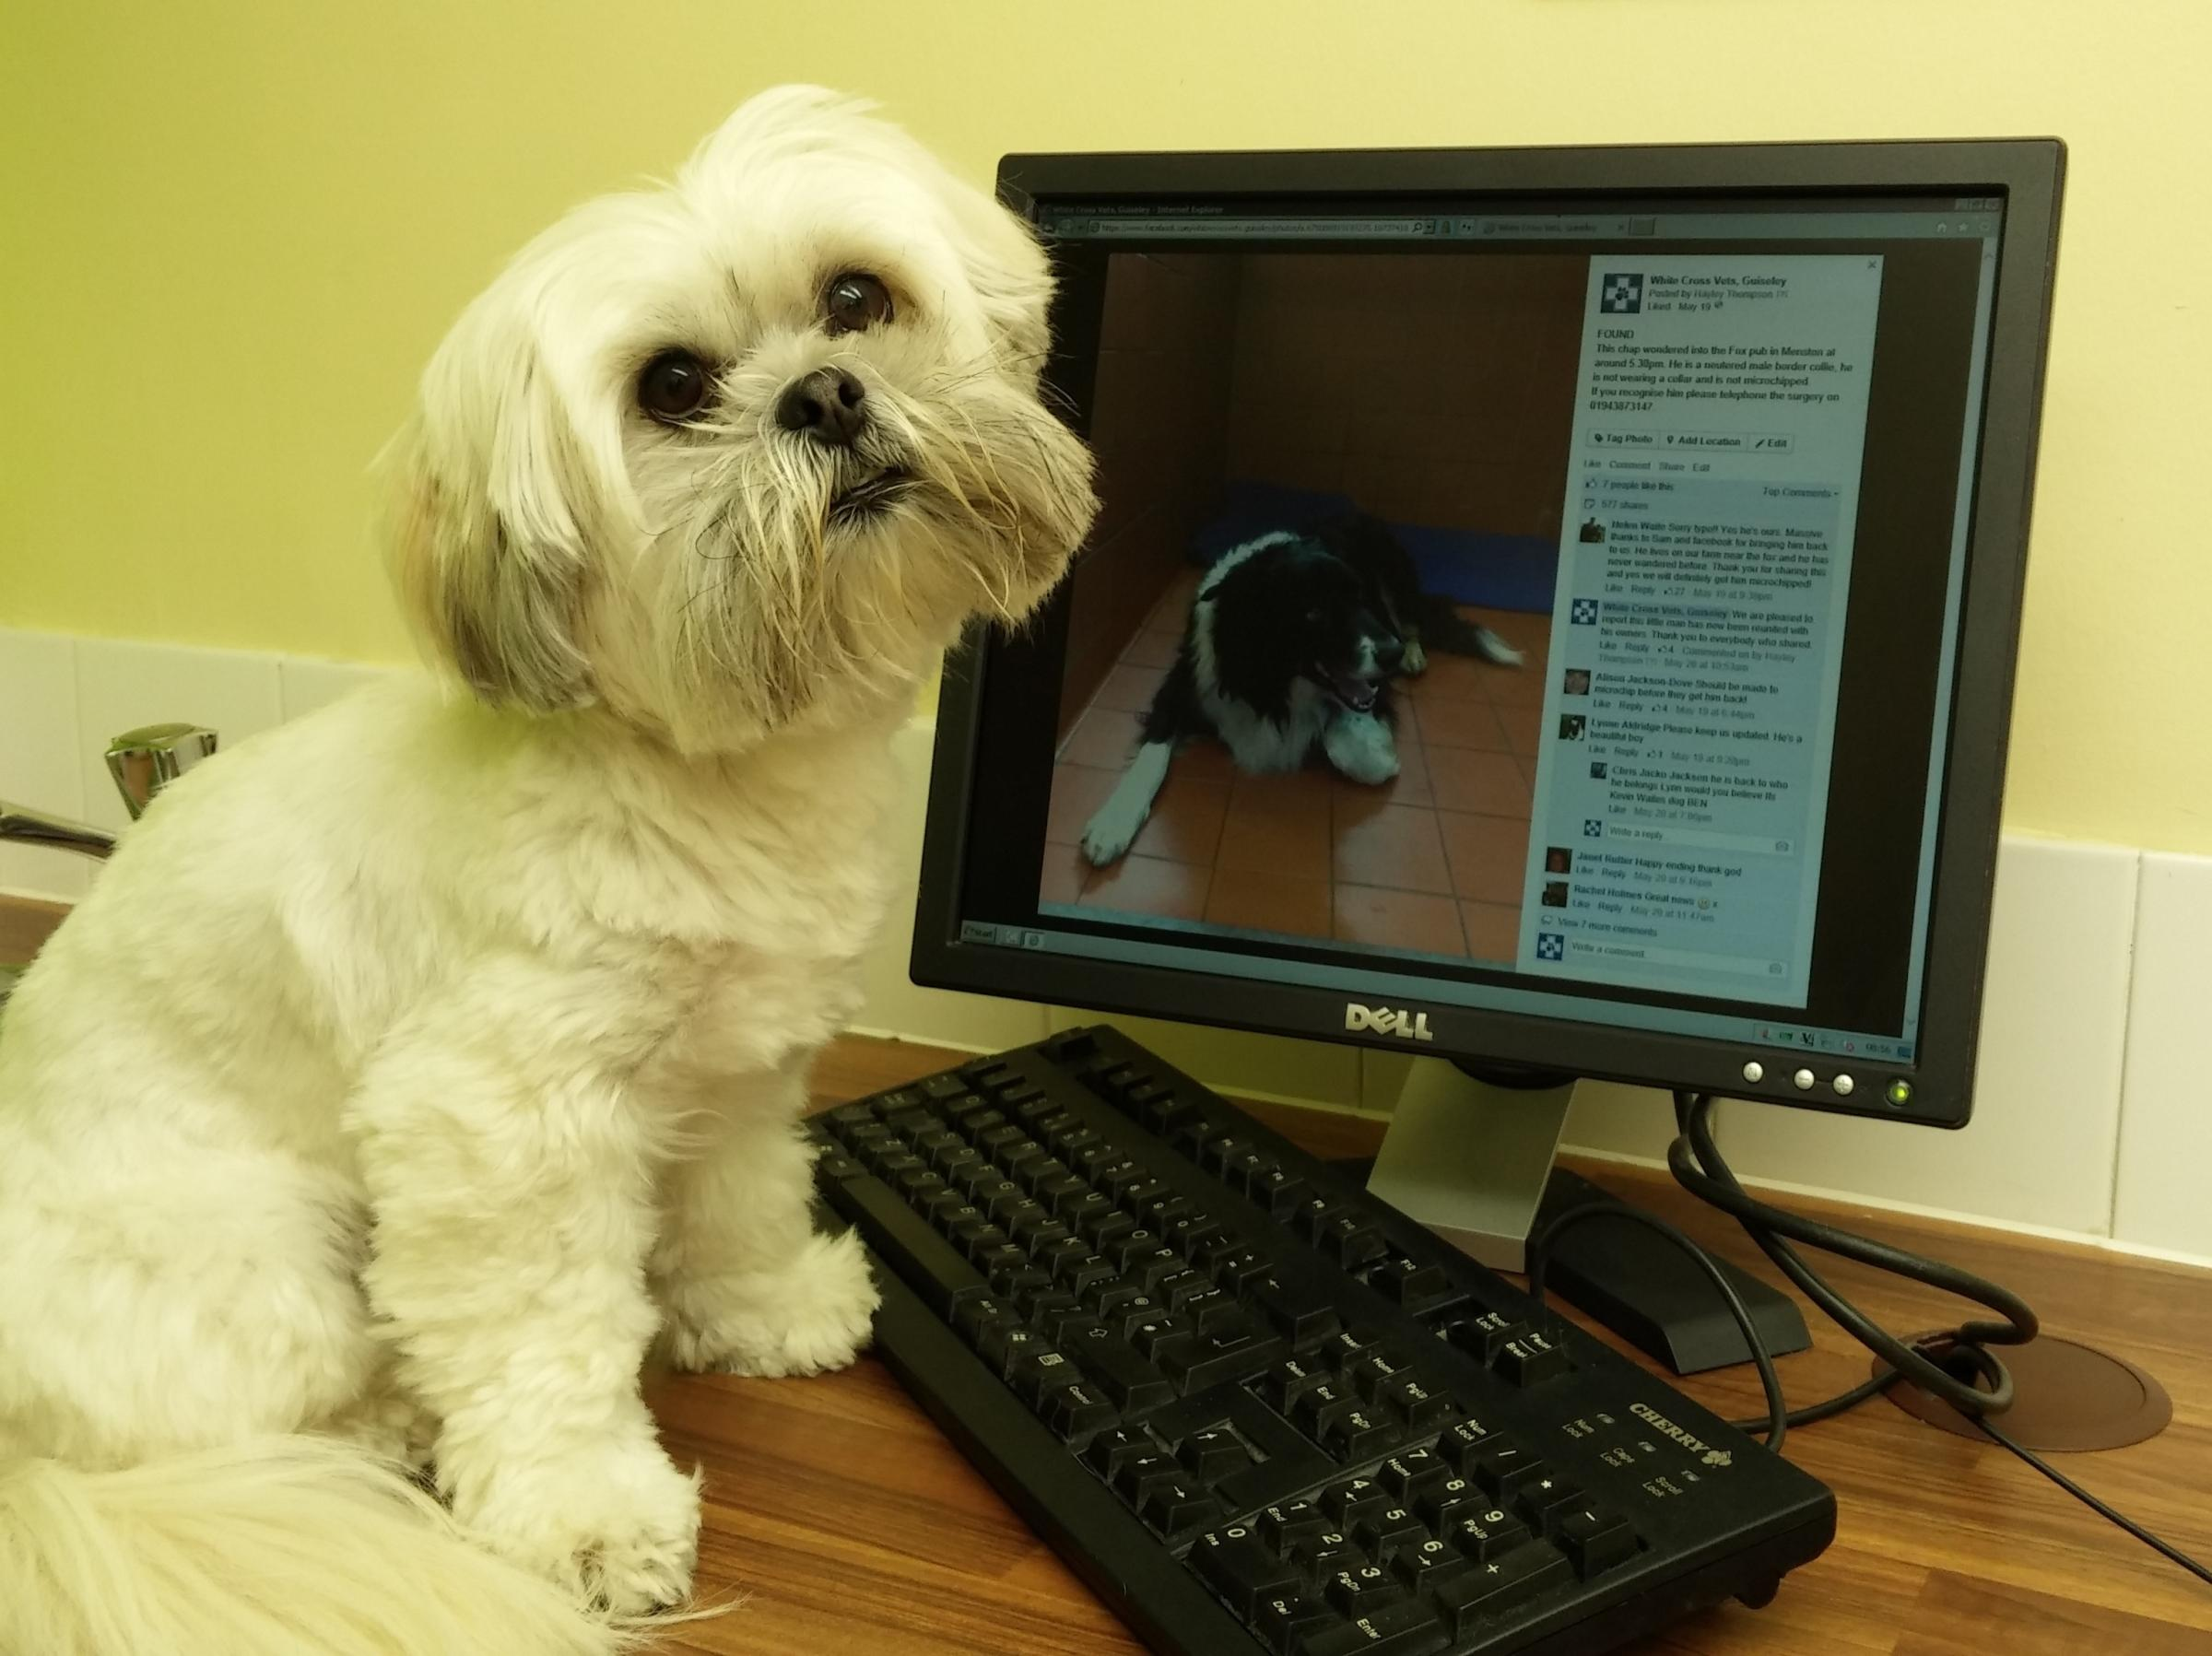 New research has shown that 75 per cent of owners are now using the Internet to check their pet's symptoms